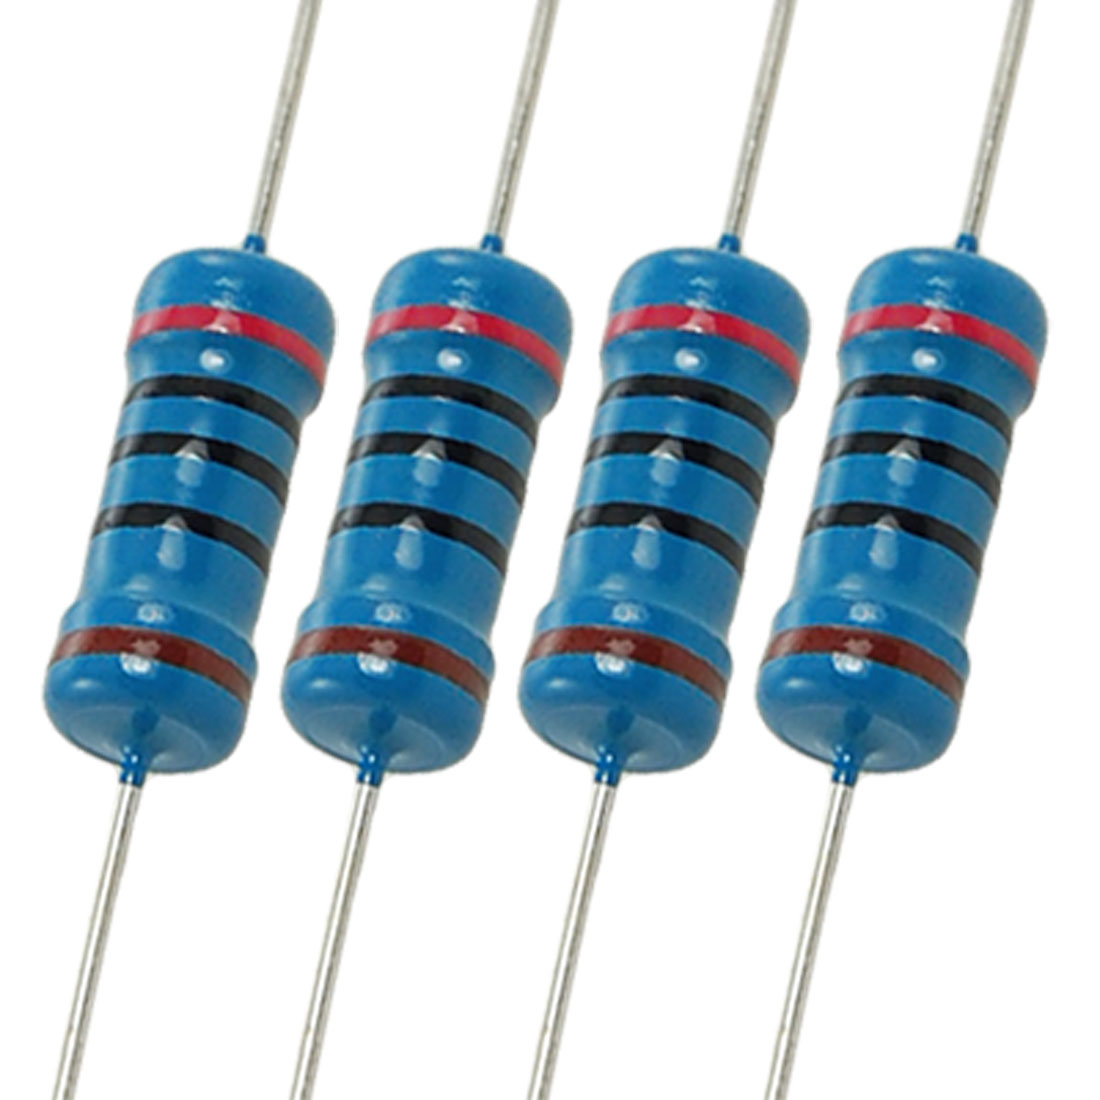 200pcs 1W 200 Ohm 1% Axial Lead Metal Film Resistors